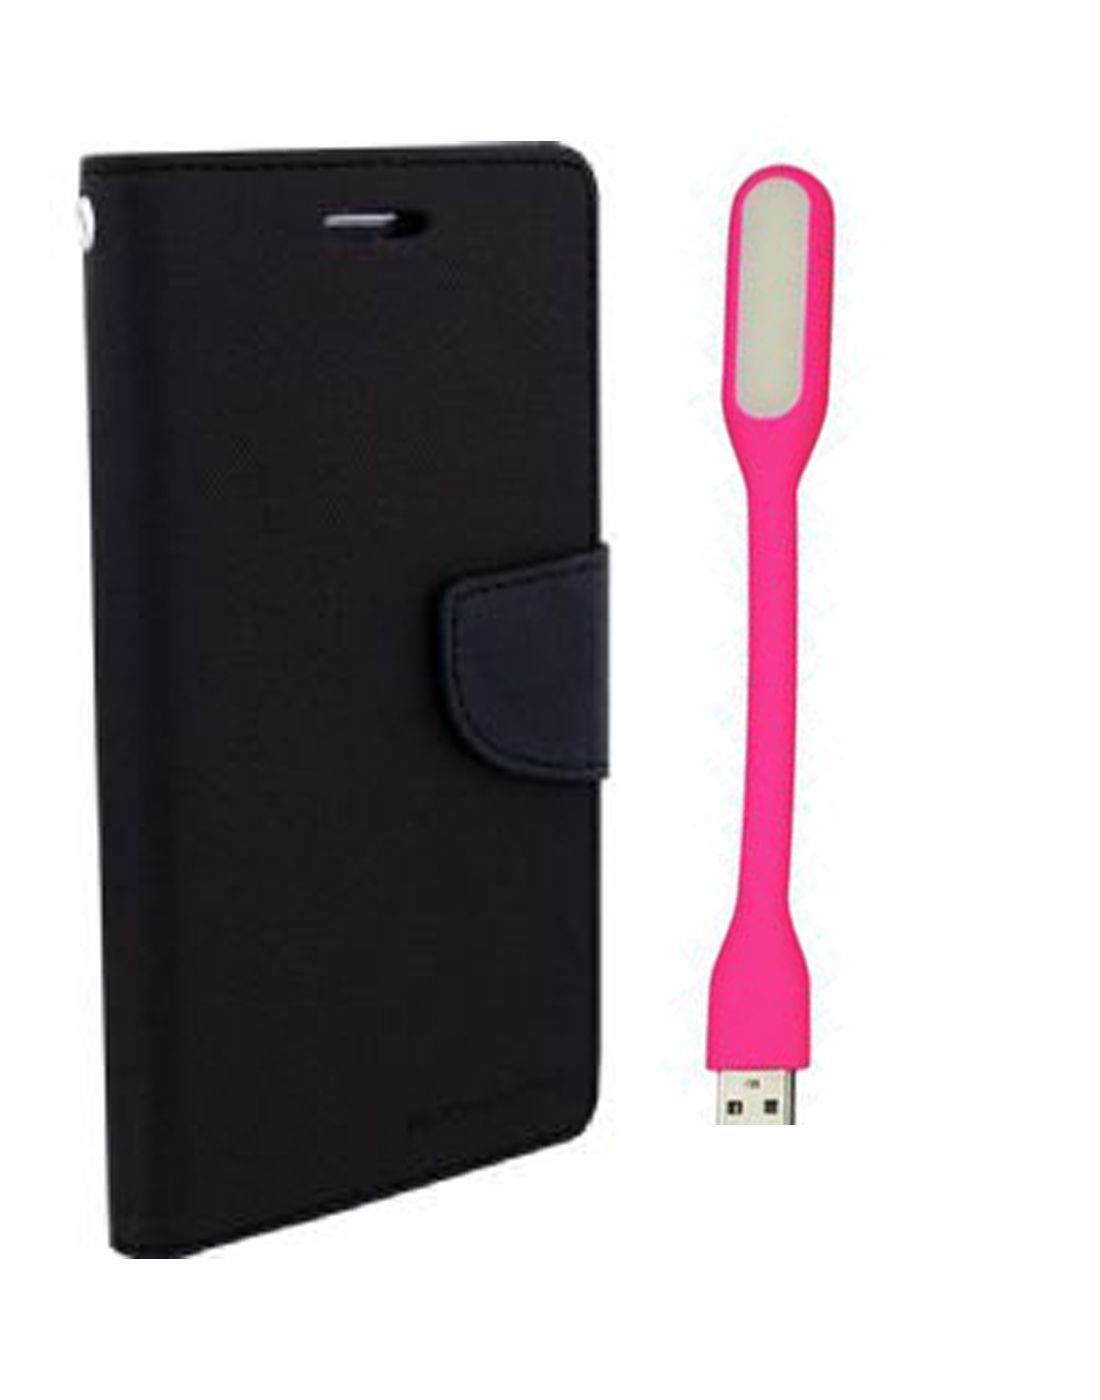 Wallet Flip Case Back Cover For Micromax A117 -(Black) + Flexible Mini LED Stick Lamp Light By Style Crome